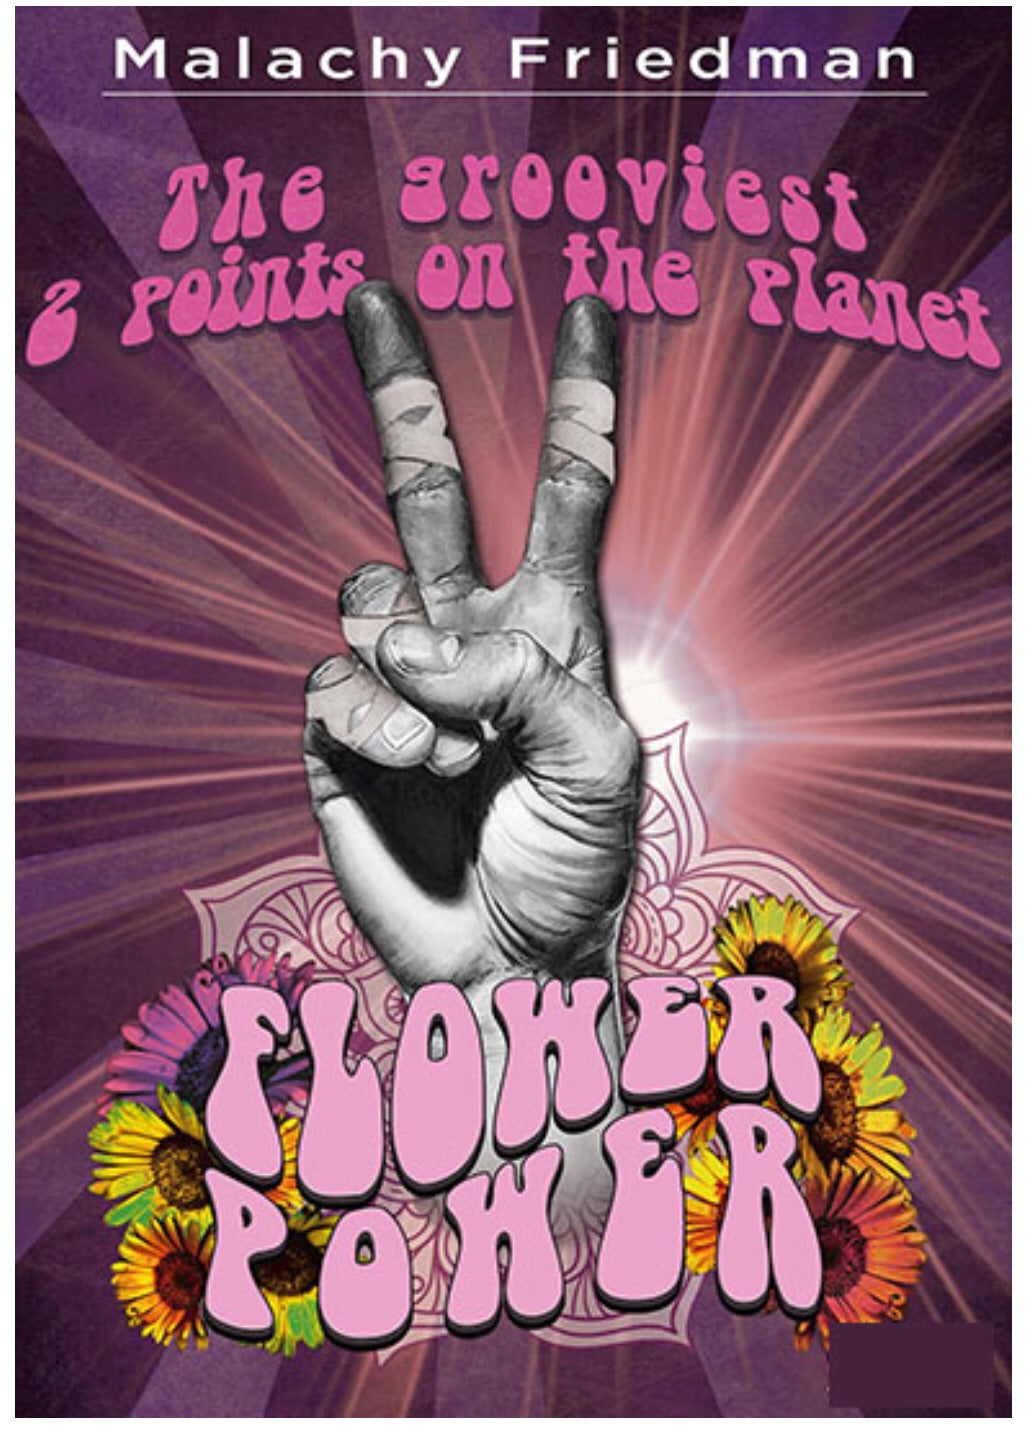 Flower Power DVD by Malachy Friedman - Budovideos